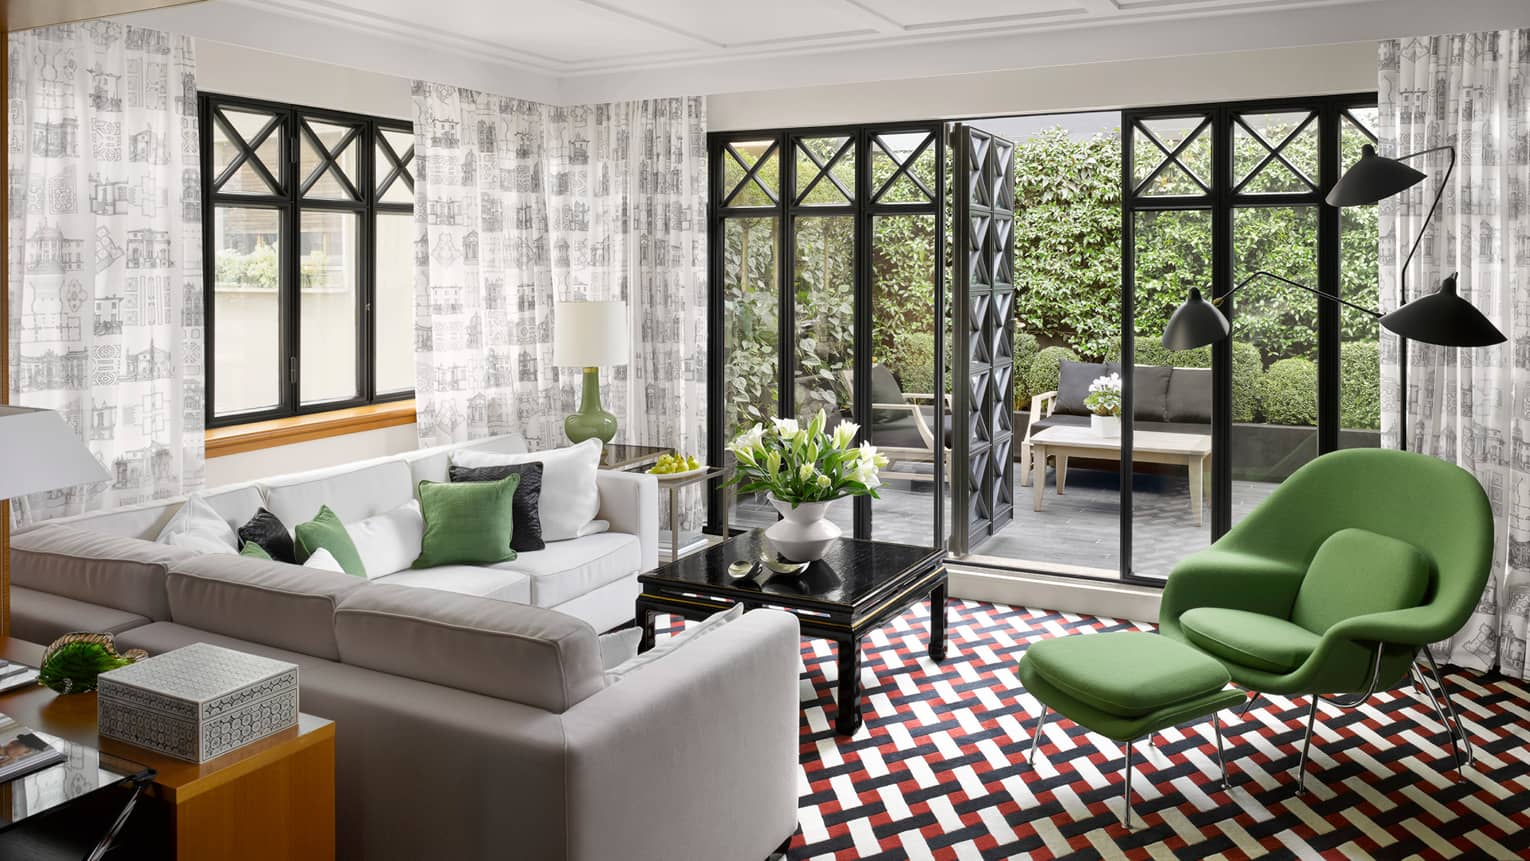 Fashion Suite grey, white sofas, green armchair on retro-style red-and-black tile floor, open balcony doors